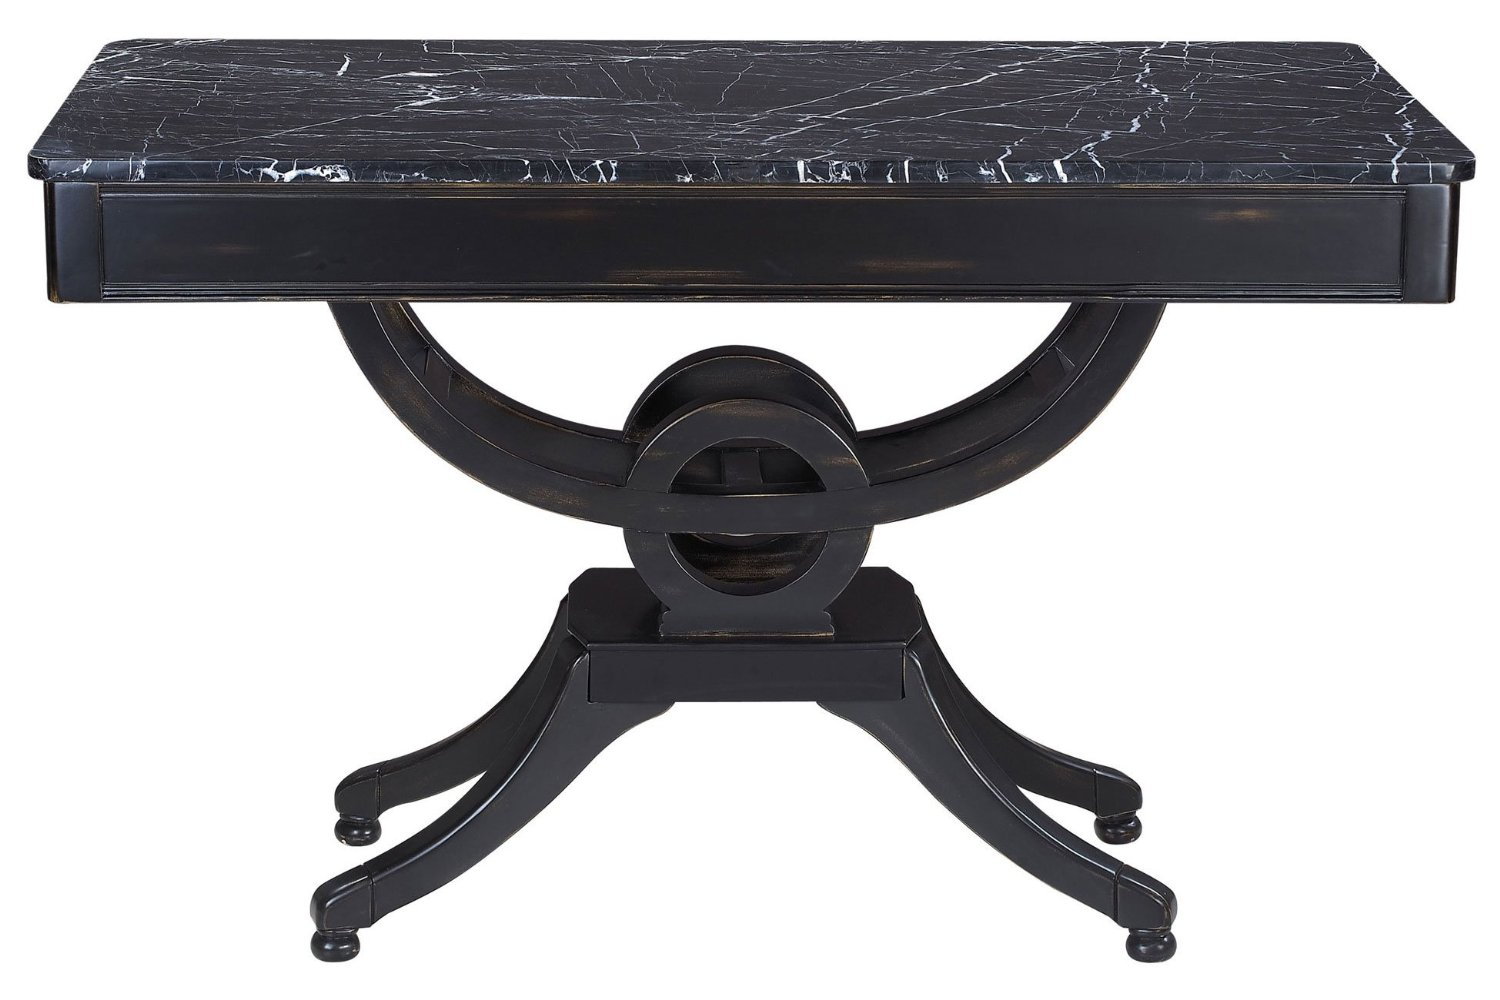 Sterling 6043638 Cinque Traditional Plantation Grown Hardwood Console with Solid Marble Top, 32-Inch, Ebony